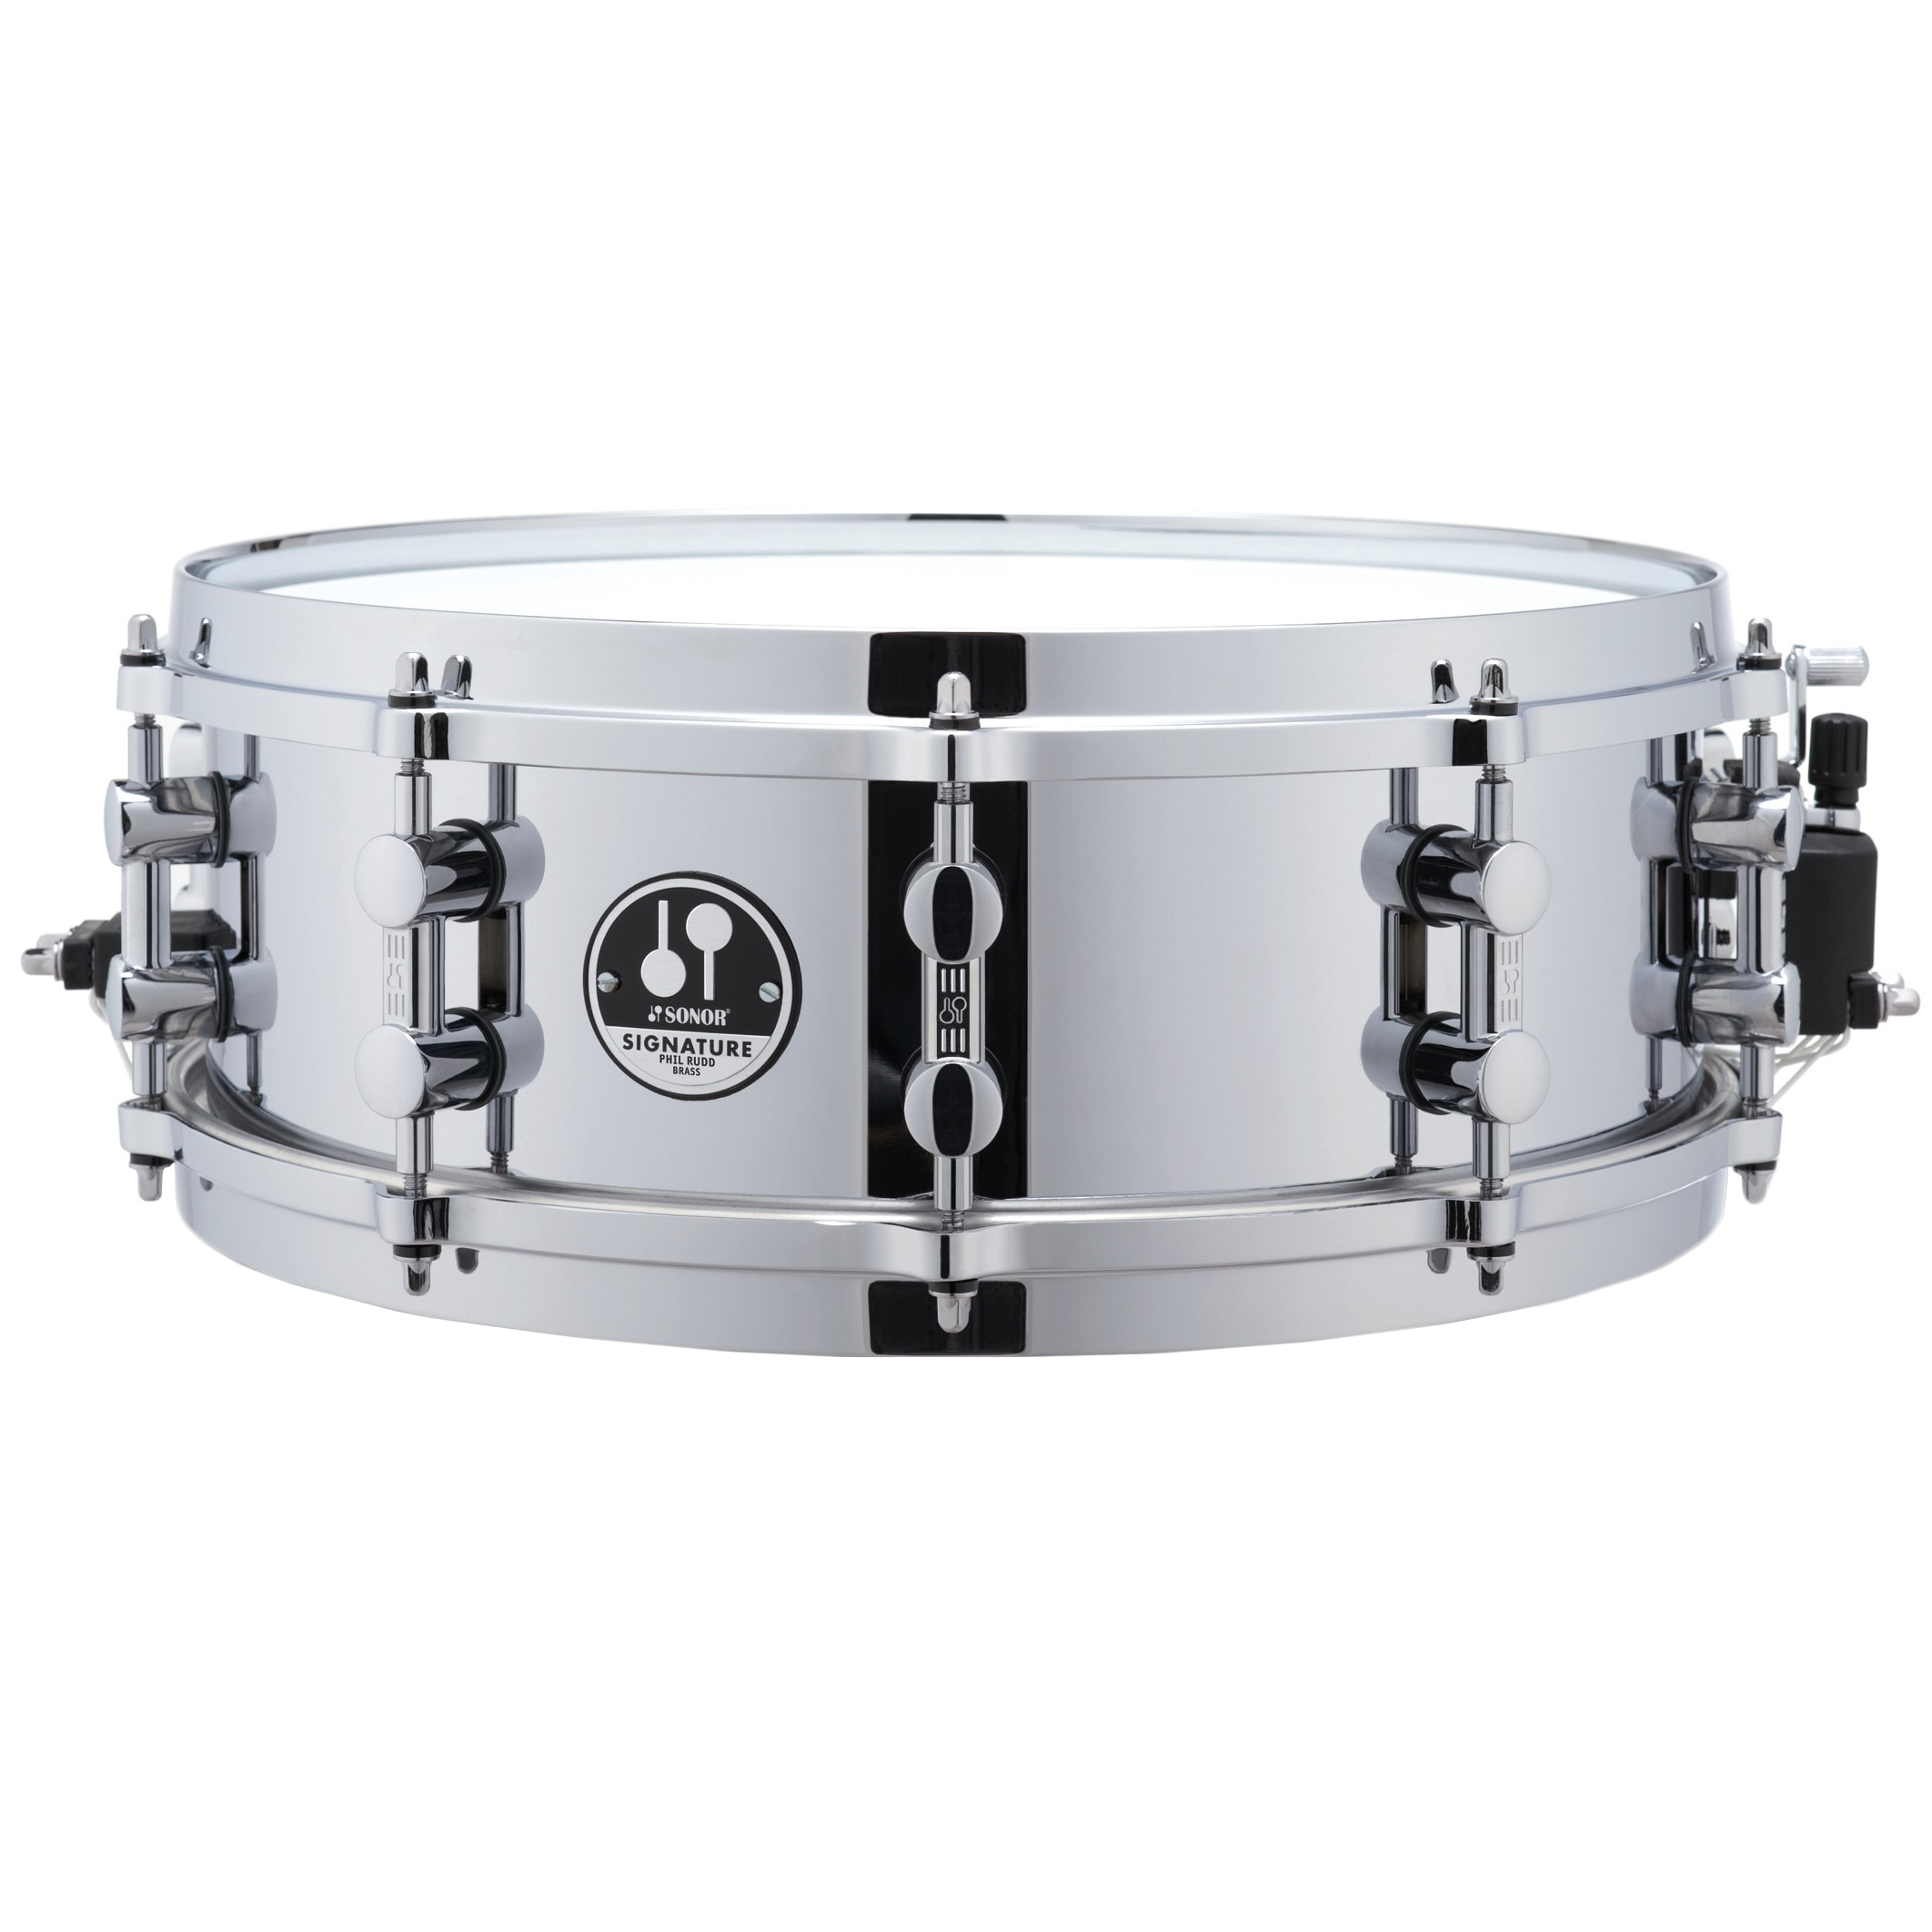 "Sonor 5"" x 14"" Phil Rudd Signature Snare Drum"